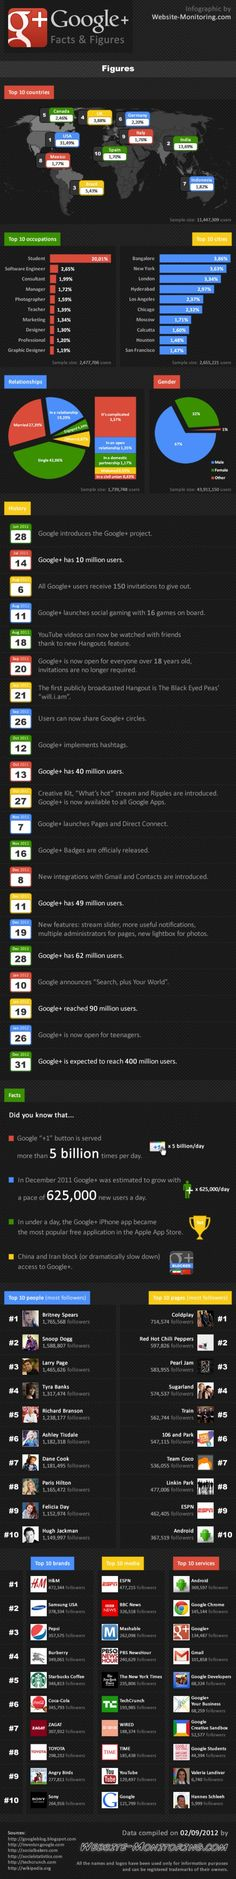 how 'bout google+